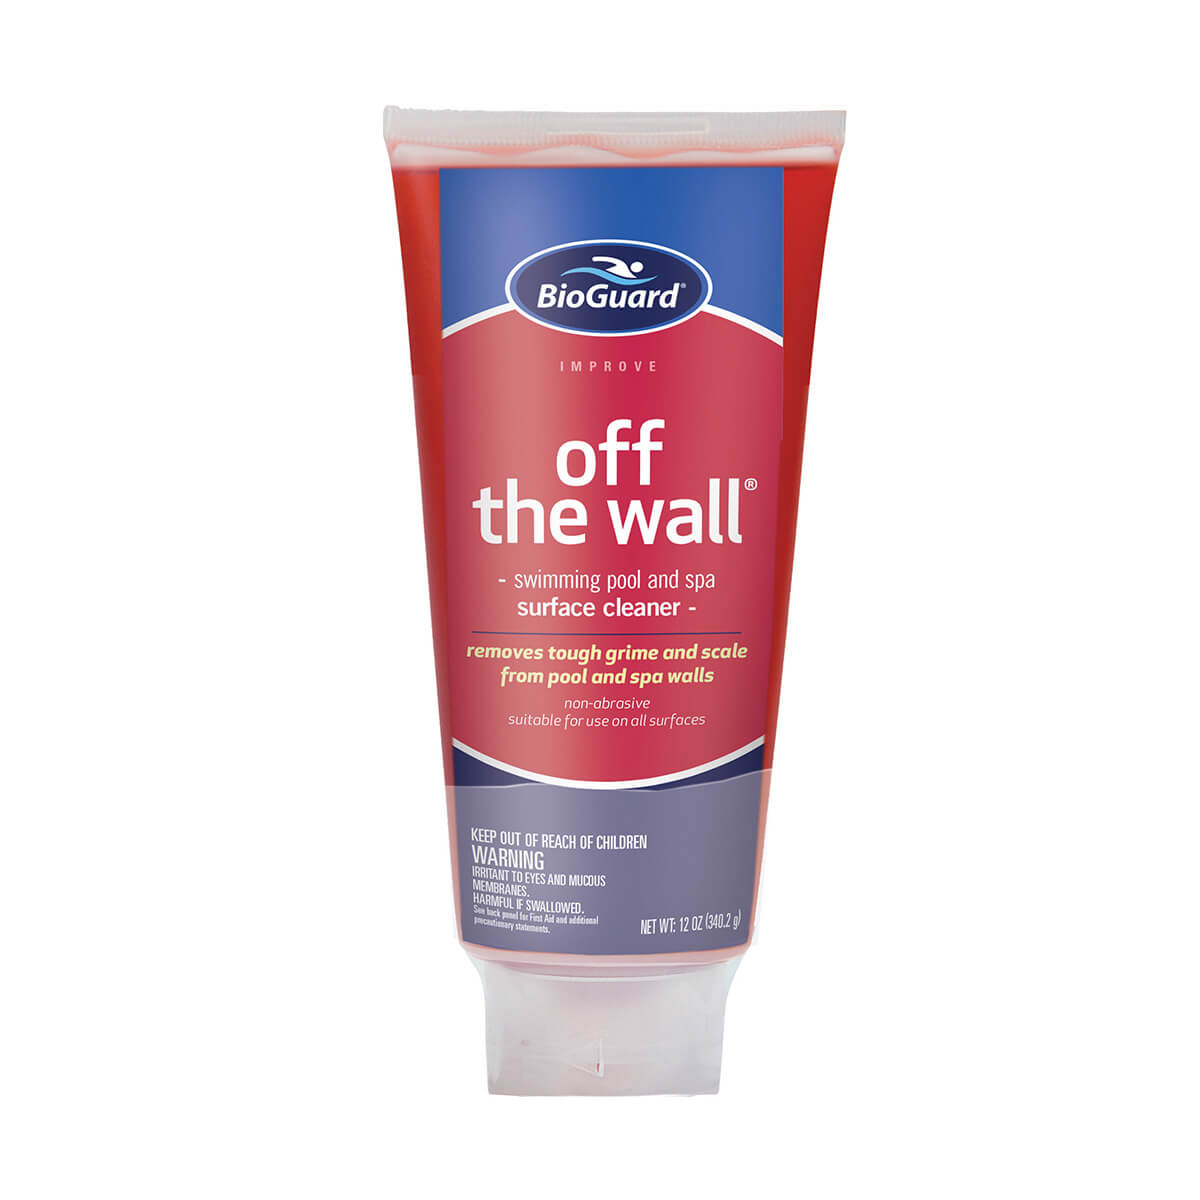 BioGuard Off the Wall